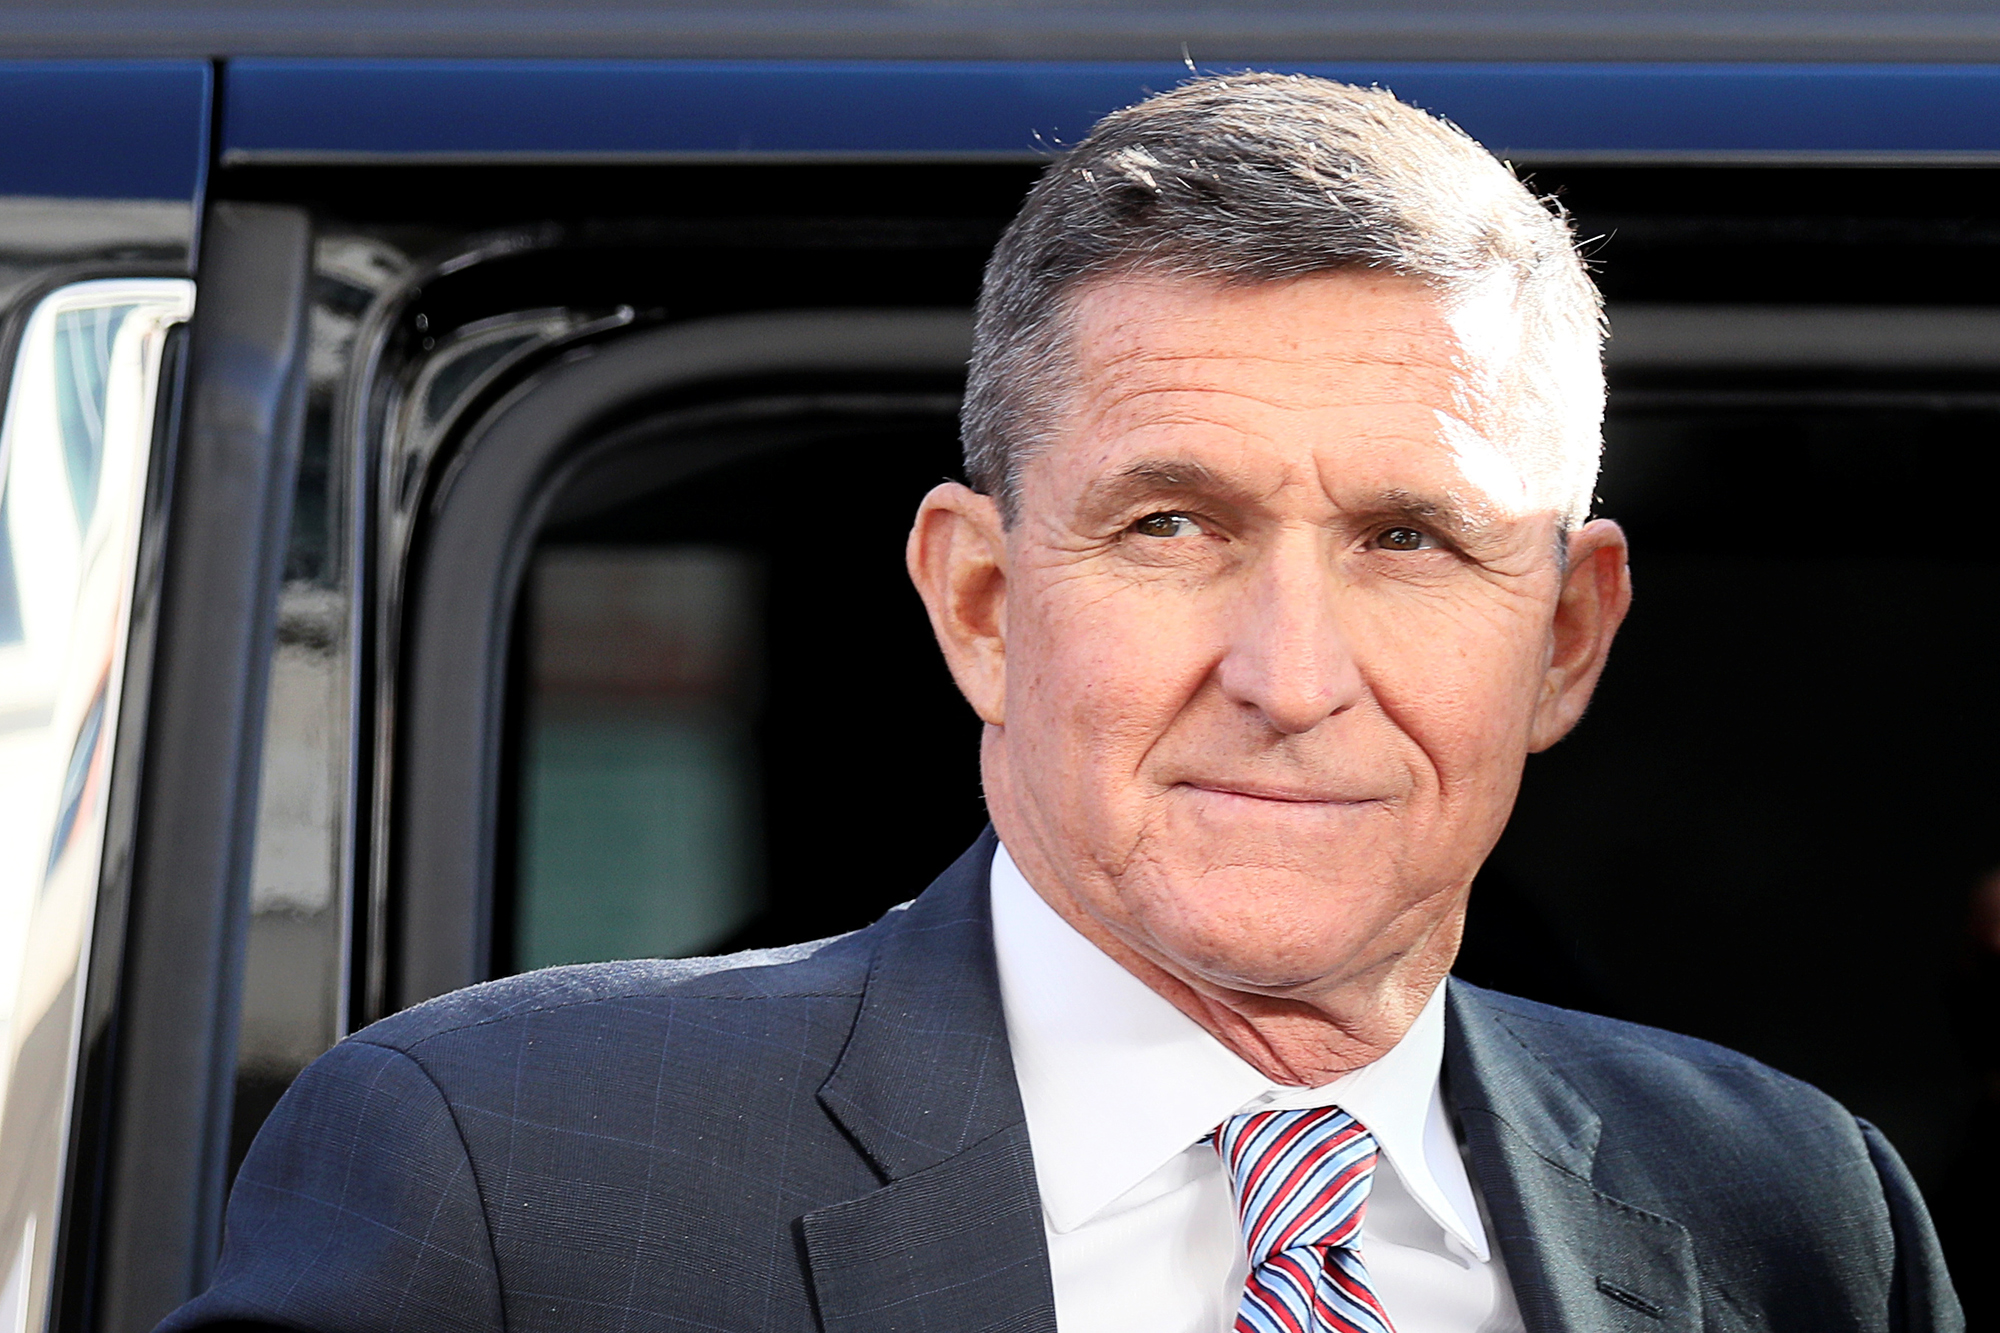 Justice Department releases Trump's pardon of Flynn and asks court for dismissal